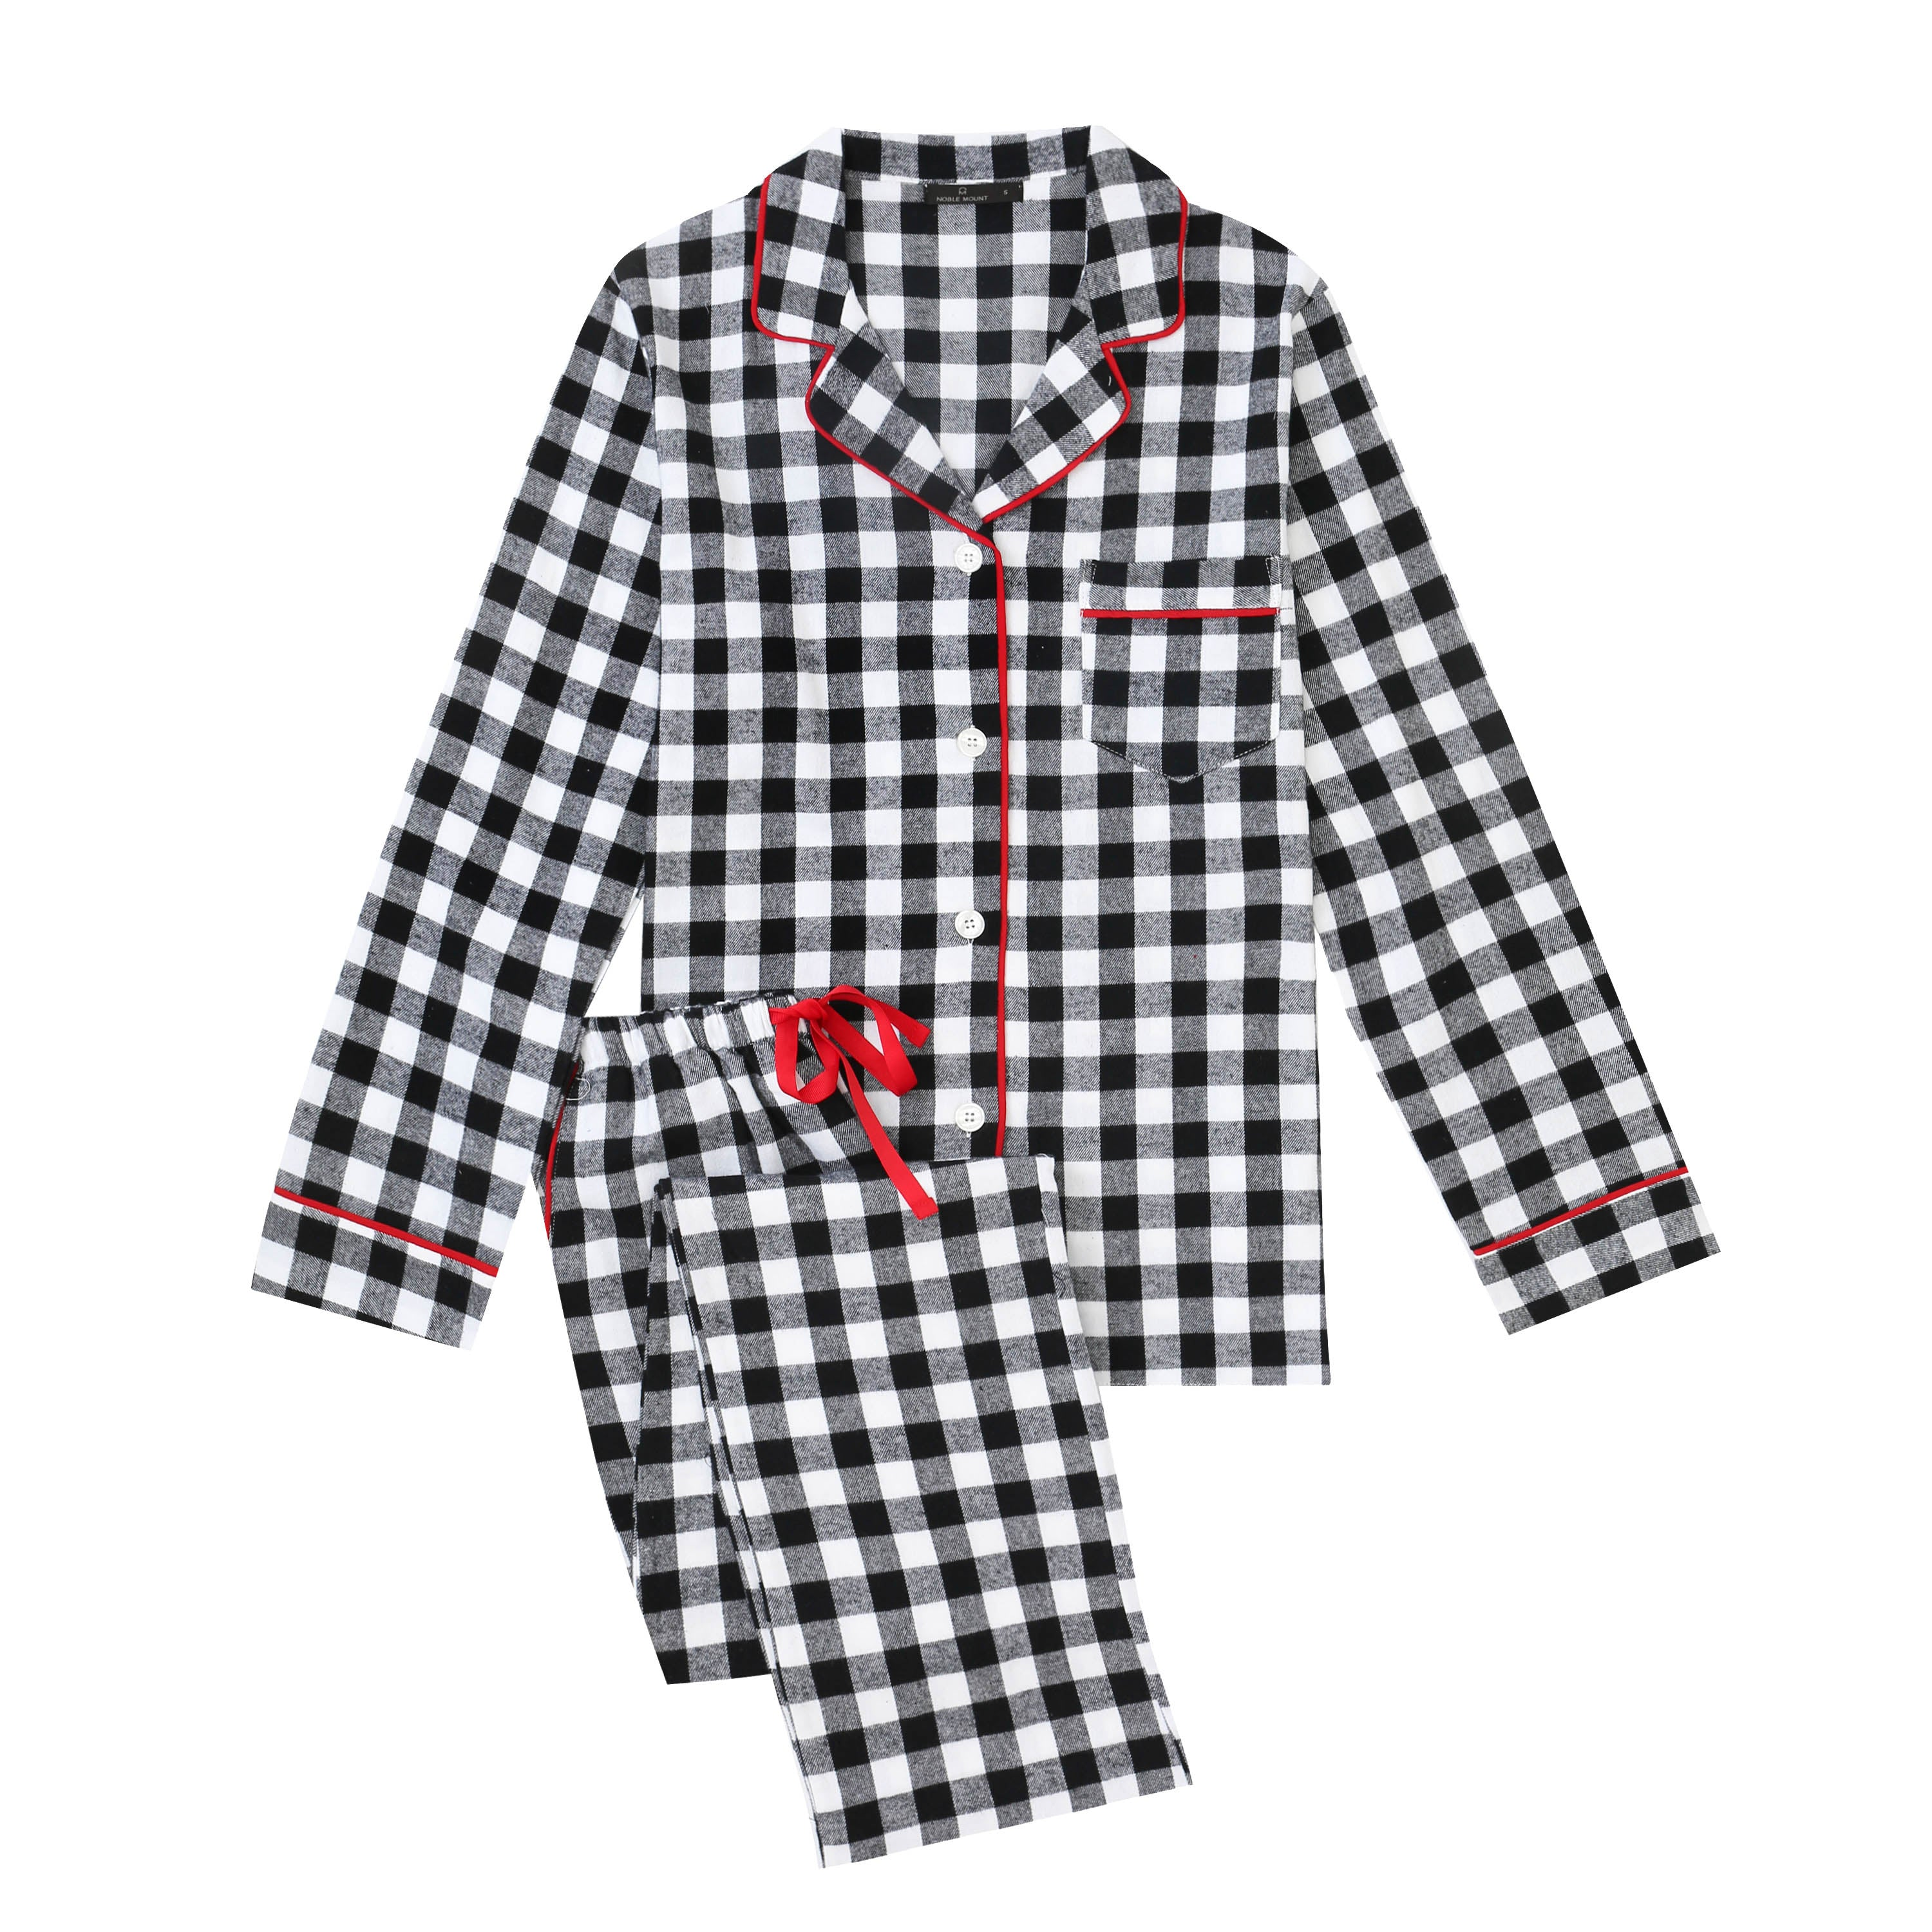 2Pc Lightweight Flannel Womens Pajama Sets - Gingham Black-White